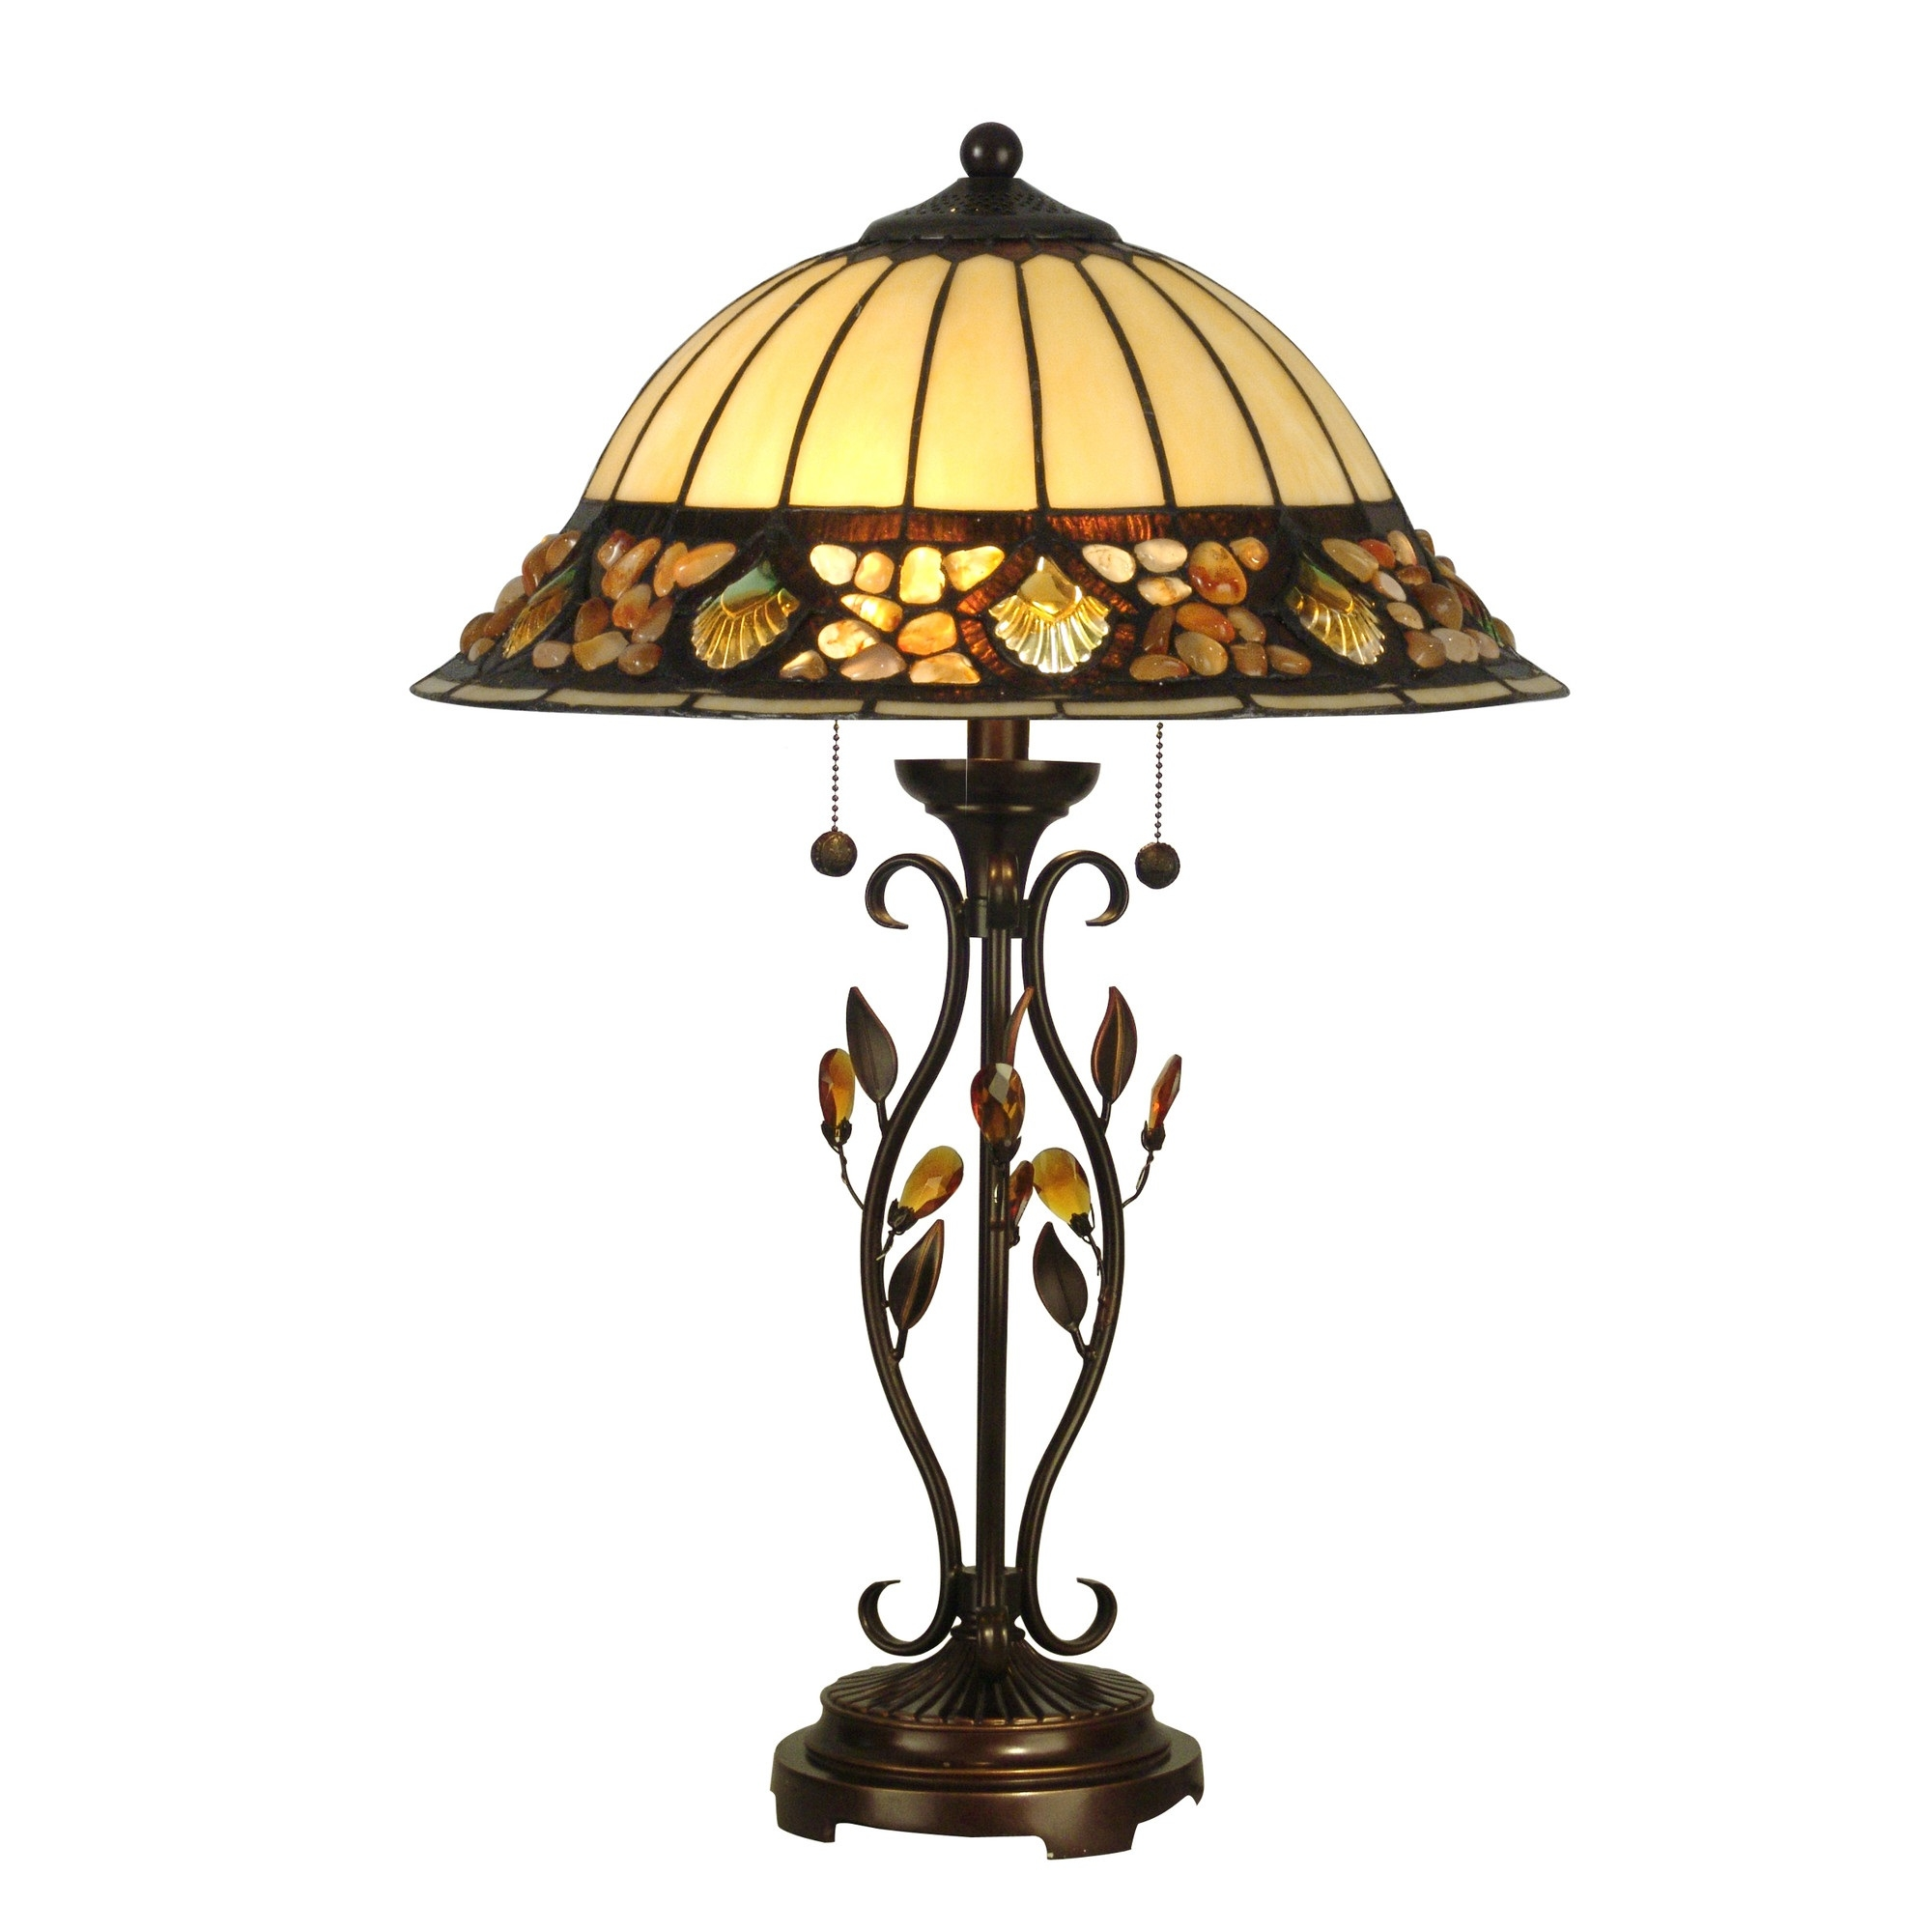 Dale Tiffany Pebblestone Table Lamp L